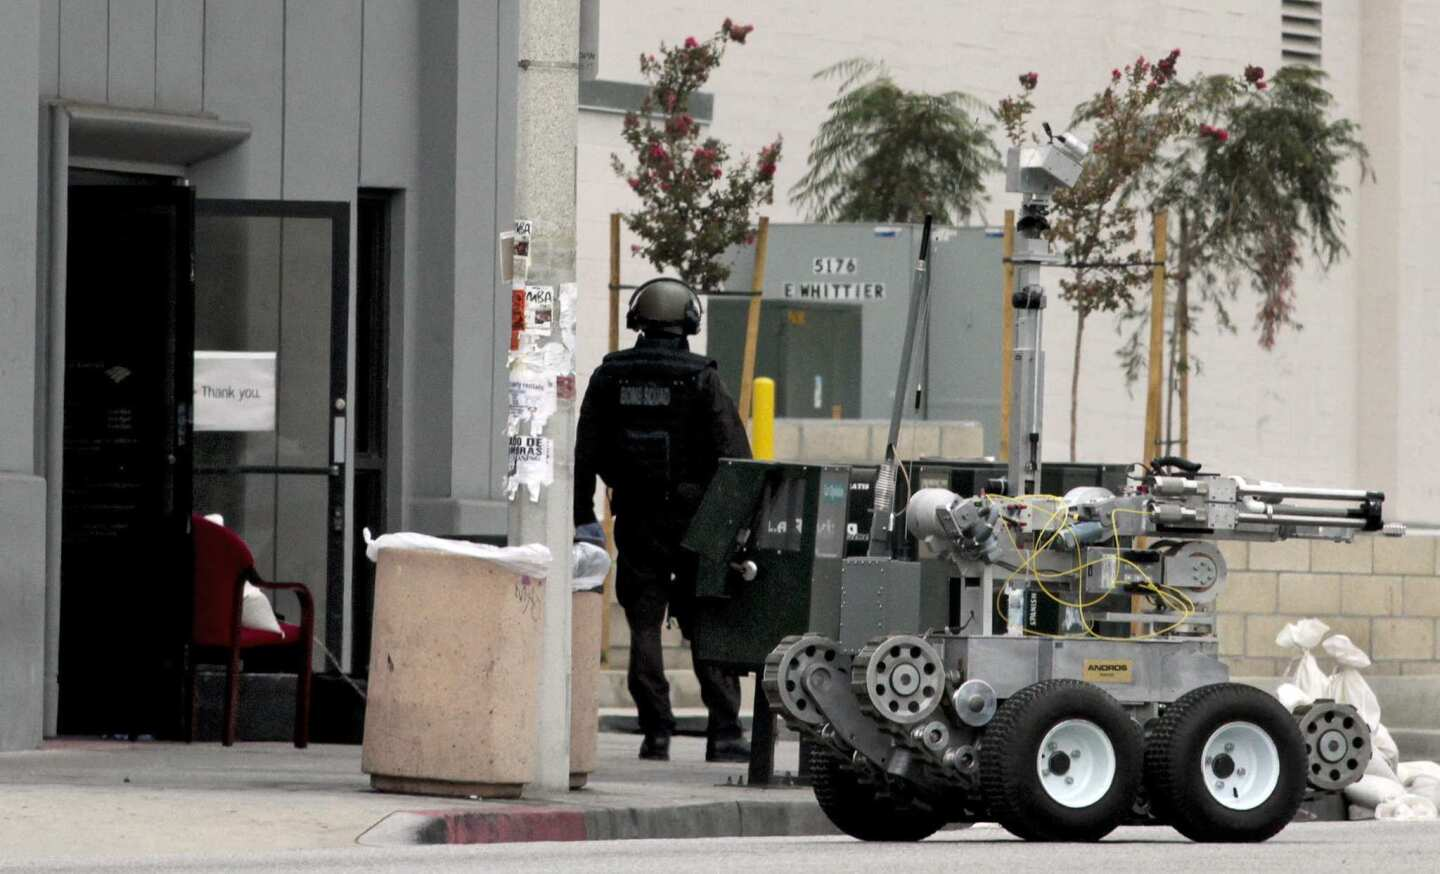 The L.A. County Sheriff's Department bomb squad was called to a Bank of America branch where a robbery occurred Wednesday morning in East Los Angeles. A manager at the bank was strapped with an apparent explosive device and forced to help two men rob her own bank. She followed instructions to throw the money out the bank's door. The robbers escaped.